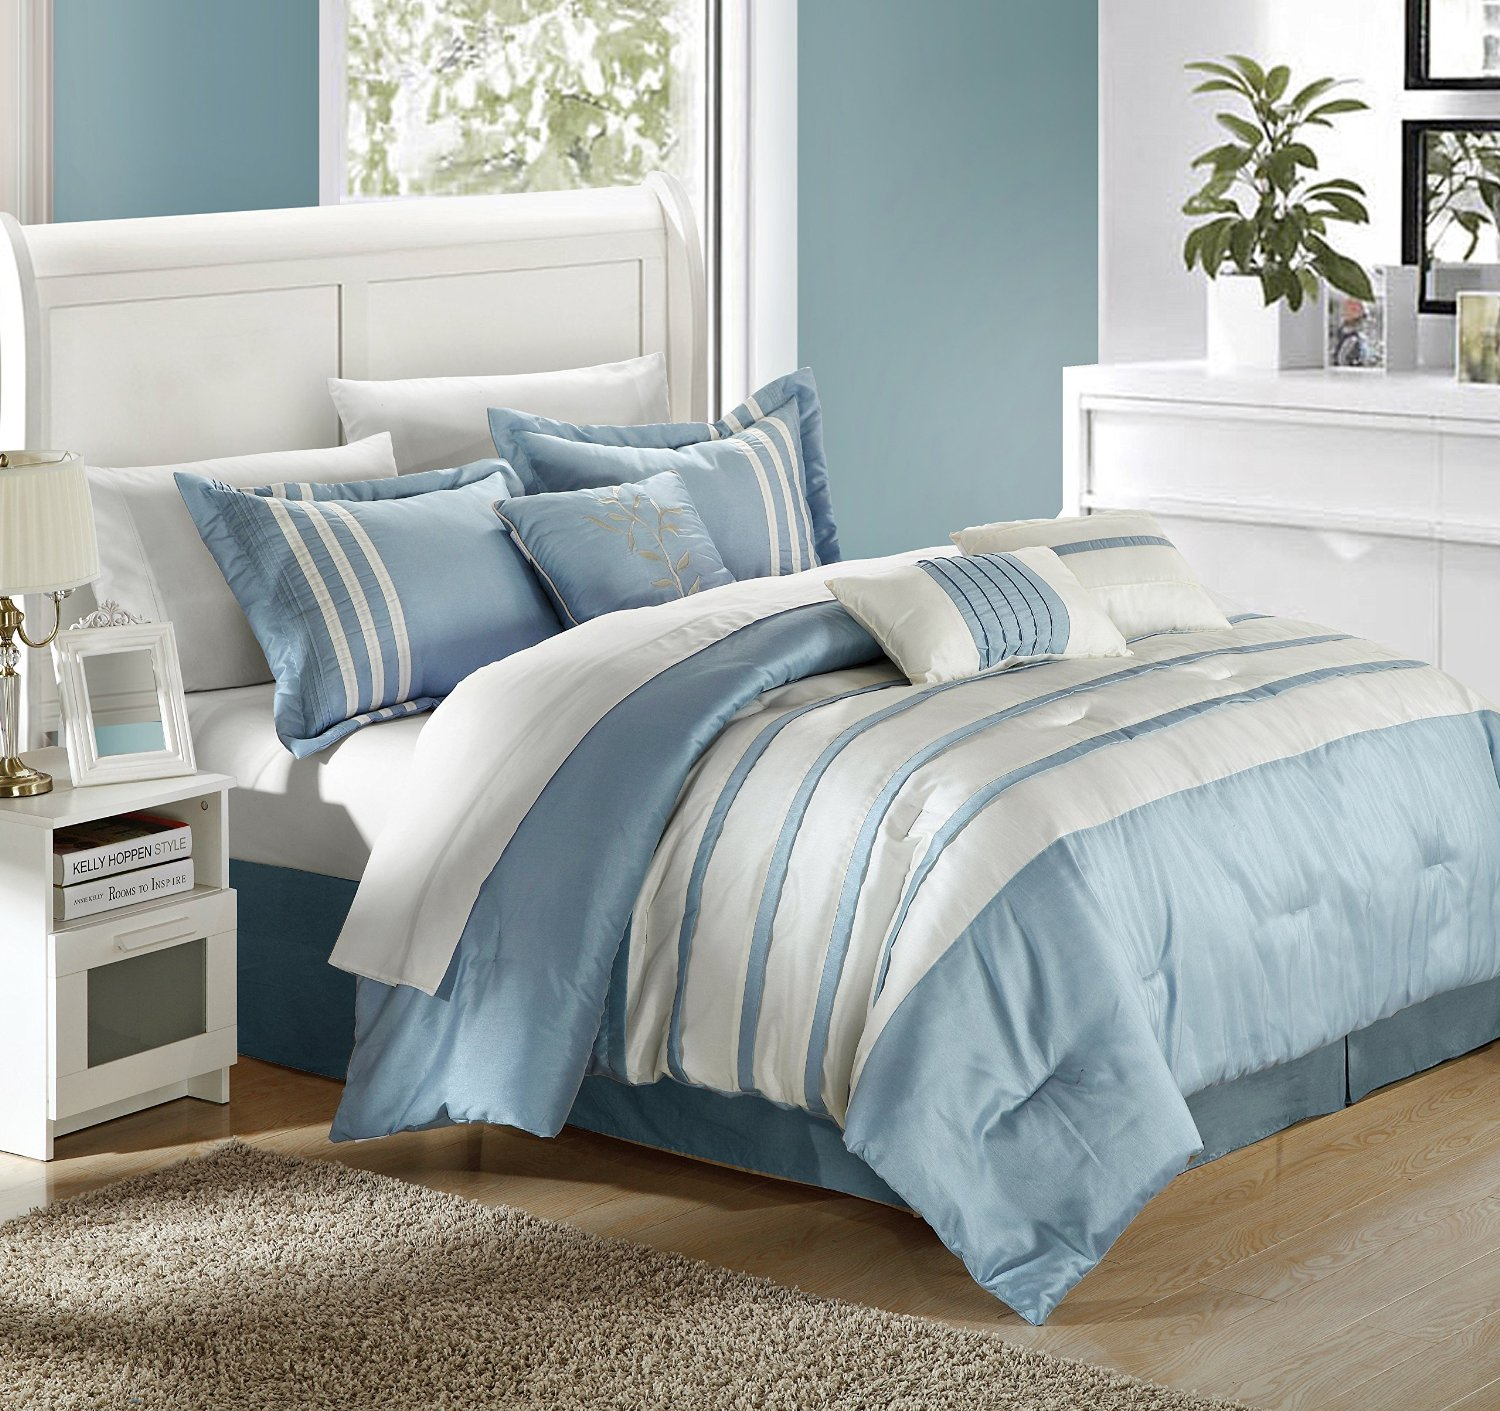 Blue And Bath Curtains Beyond Bed Tan